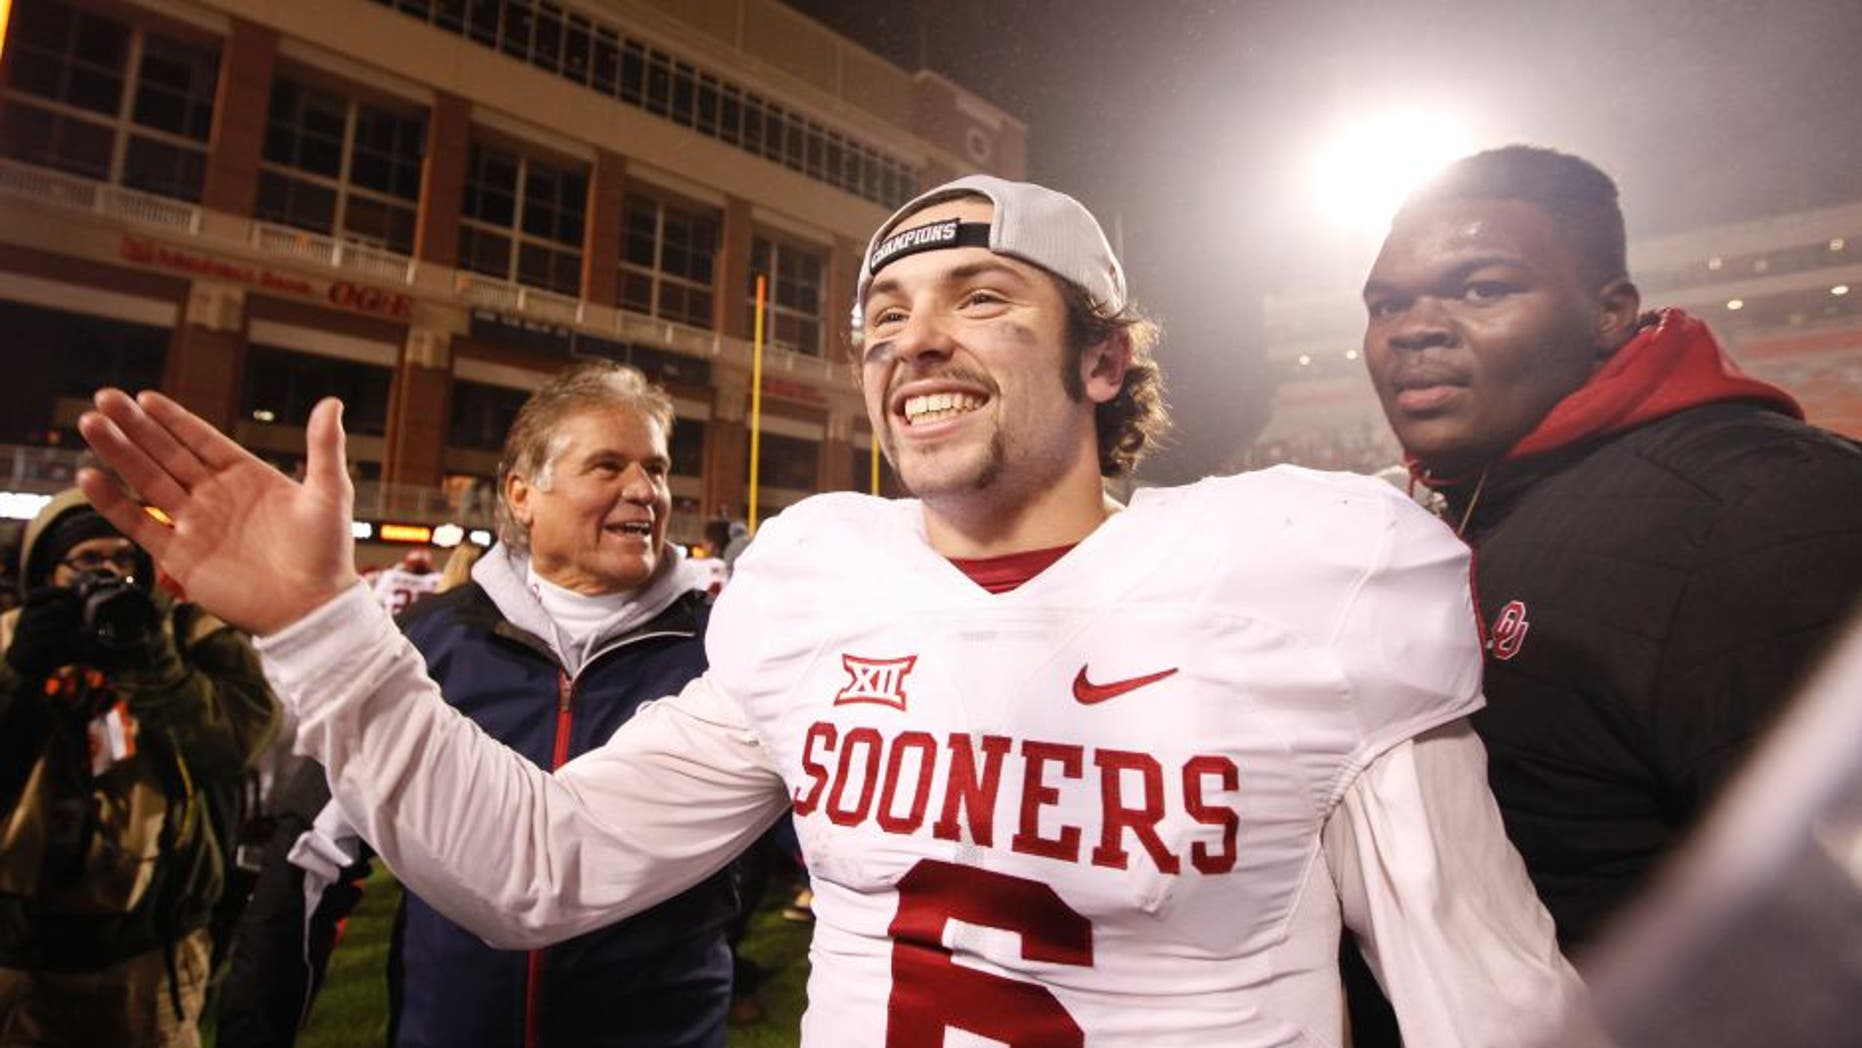 STILLWATER, OK - NOVEMBER 28 : Quarterback Baker Mayfield #6 of the Oklahoma Sooners celebrates after the game against the Oklahoma State Cowboys November 28, 2015 at Boone Pickens Stadium in Stillwater, Oklahoma. Oklahoma defeated Oklahoma State 58-23.(Photo by Brett Deering/Getty Images)